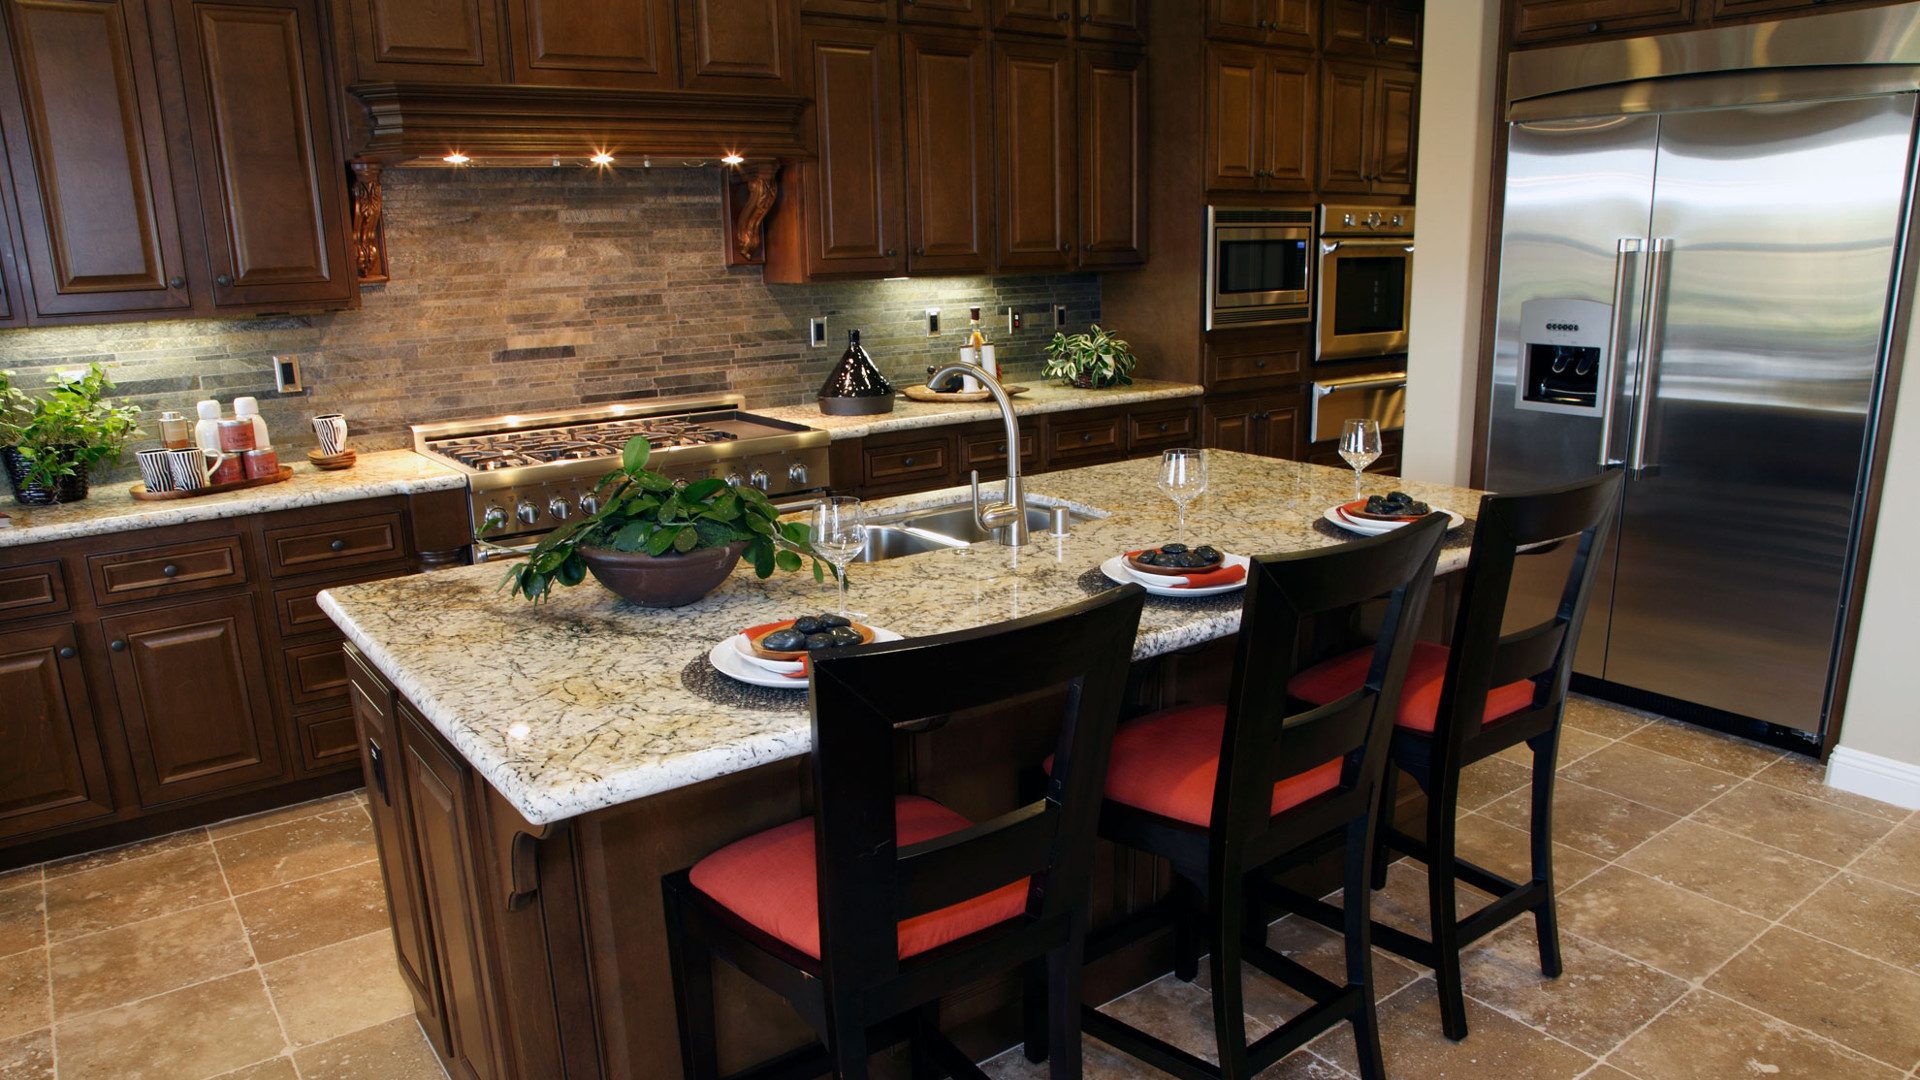 philadelphia remodeling: kitchen remodel, bathroom remodel and